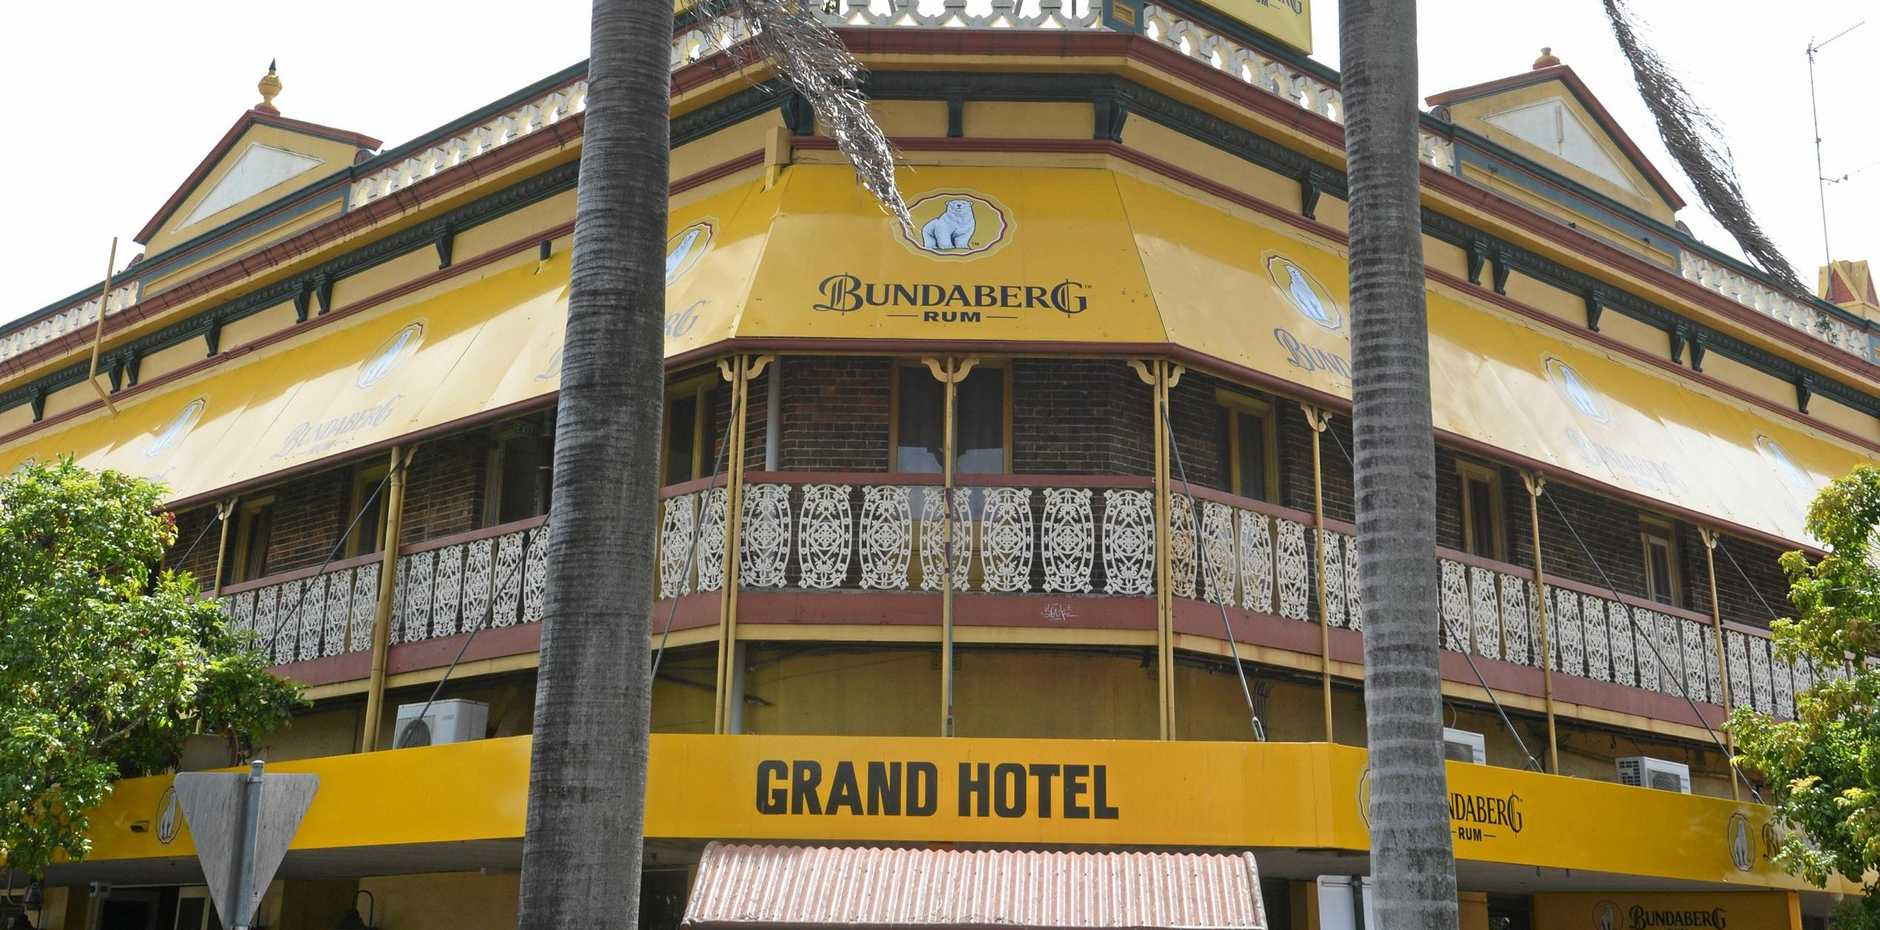 LIQUIDATION: The Grand Hotel Bundaberg has been ordered to wind up by the Federal Court of Australia.